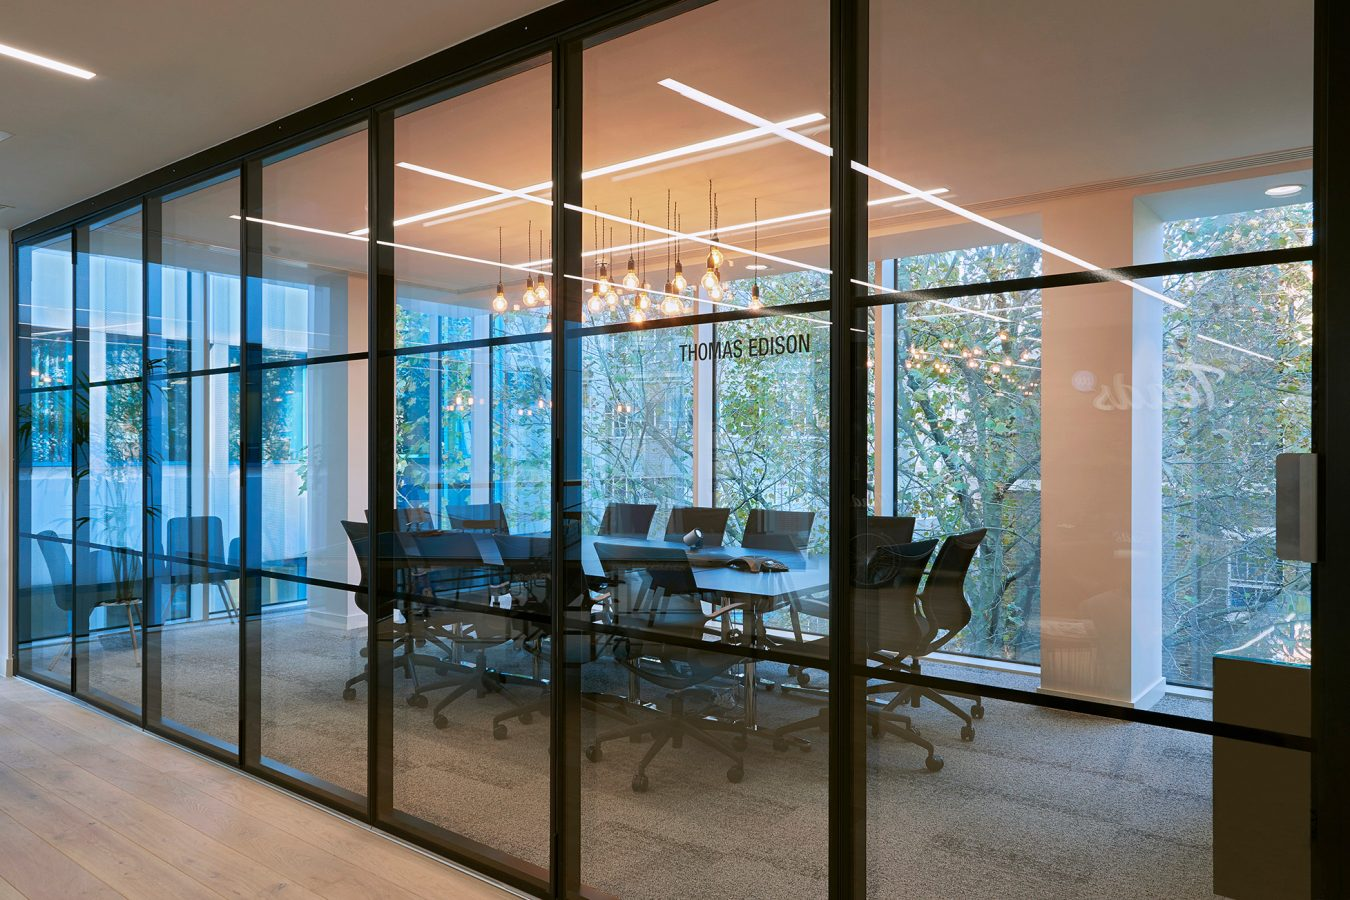 Modern meeting room design, pendant lights, glass partitions, office design, contemporary style, office fit out near London.